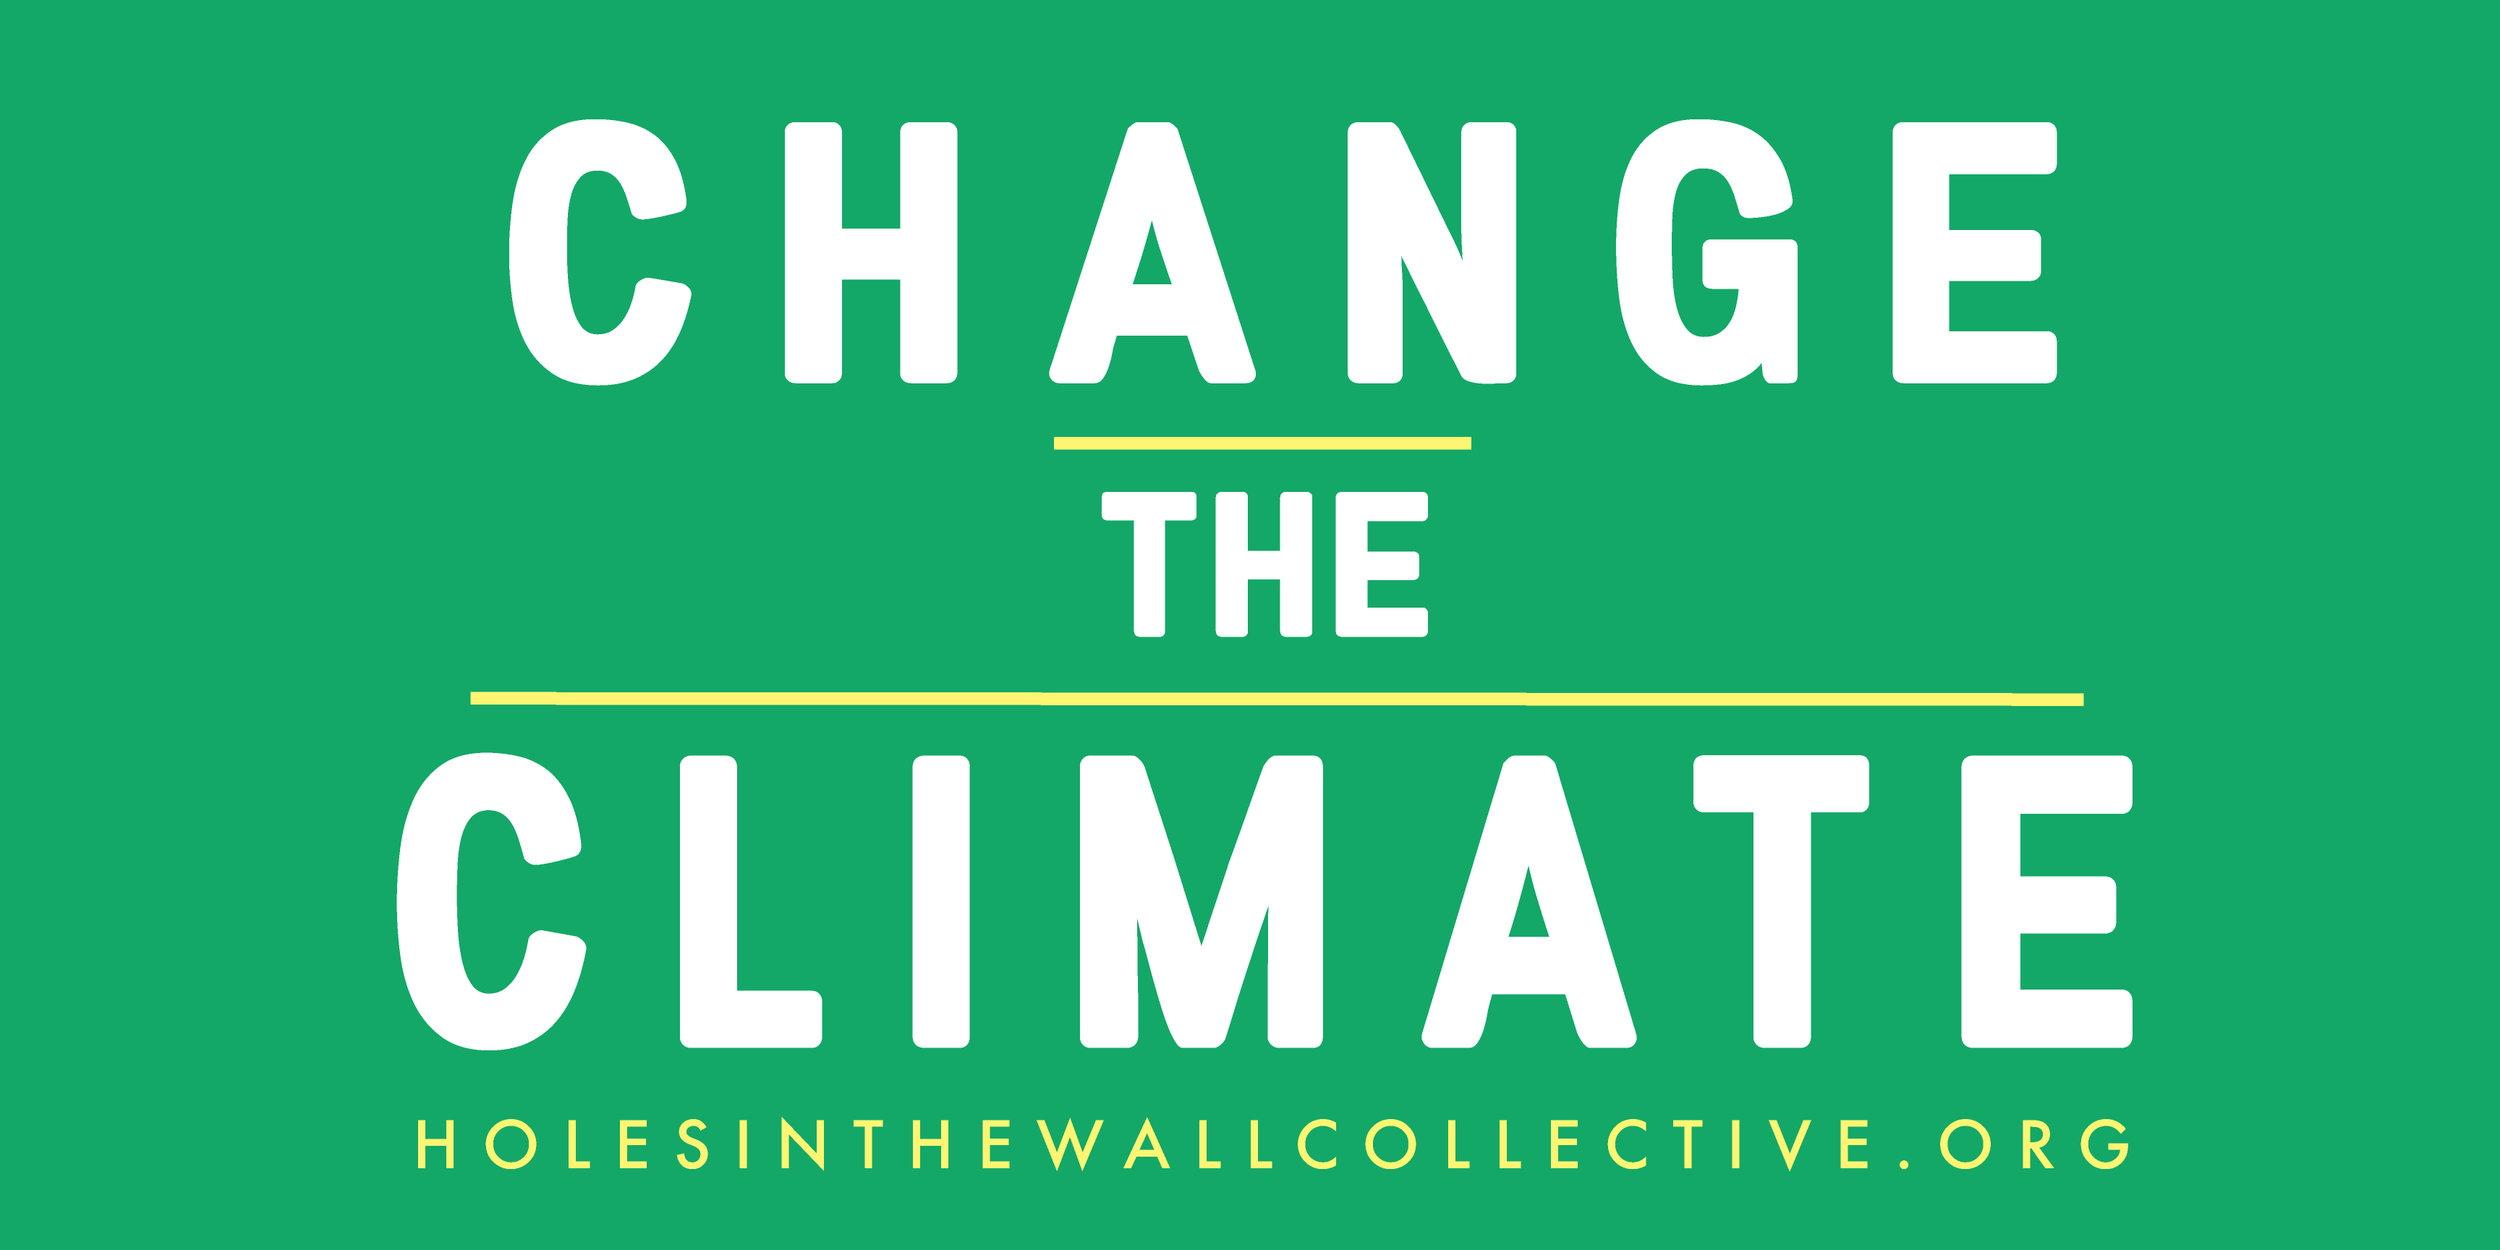 Change-the-Climate-banner-4x2.jpg